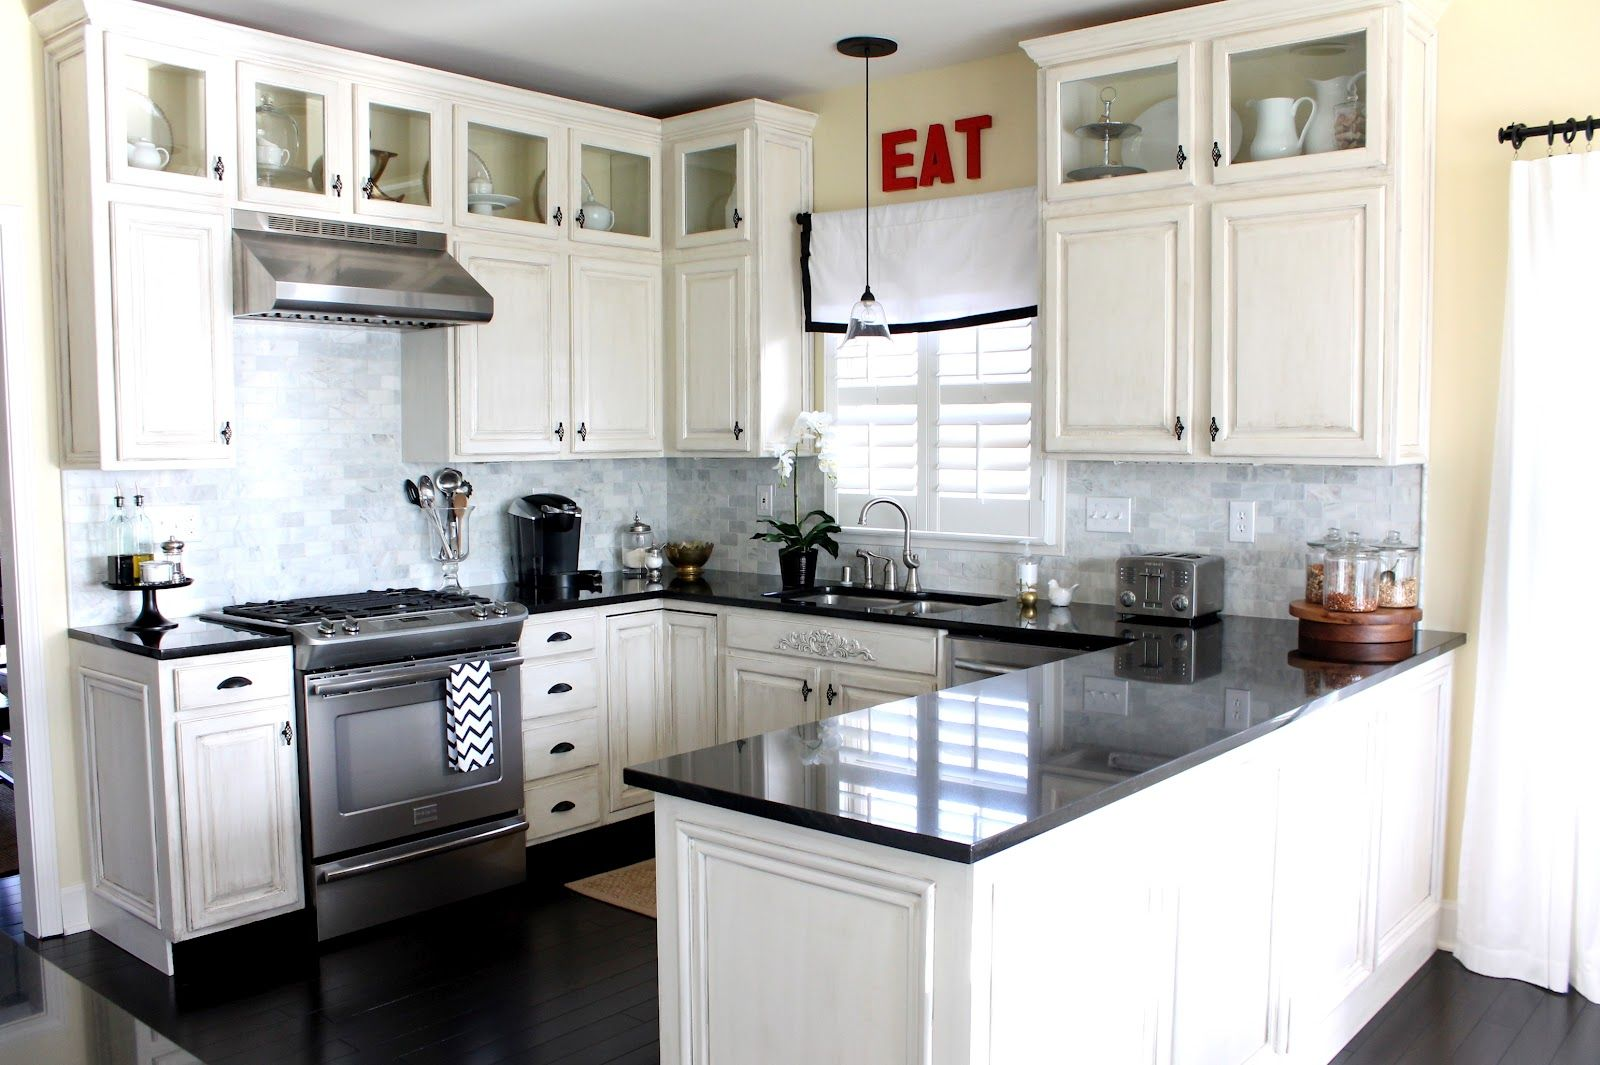 Room Decorating Before and After Makeovers | Could ve, Kitchens and ...